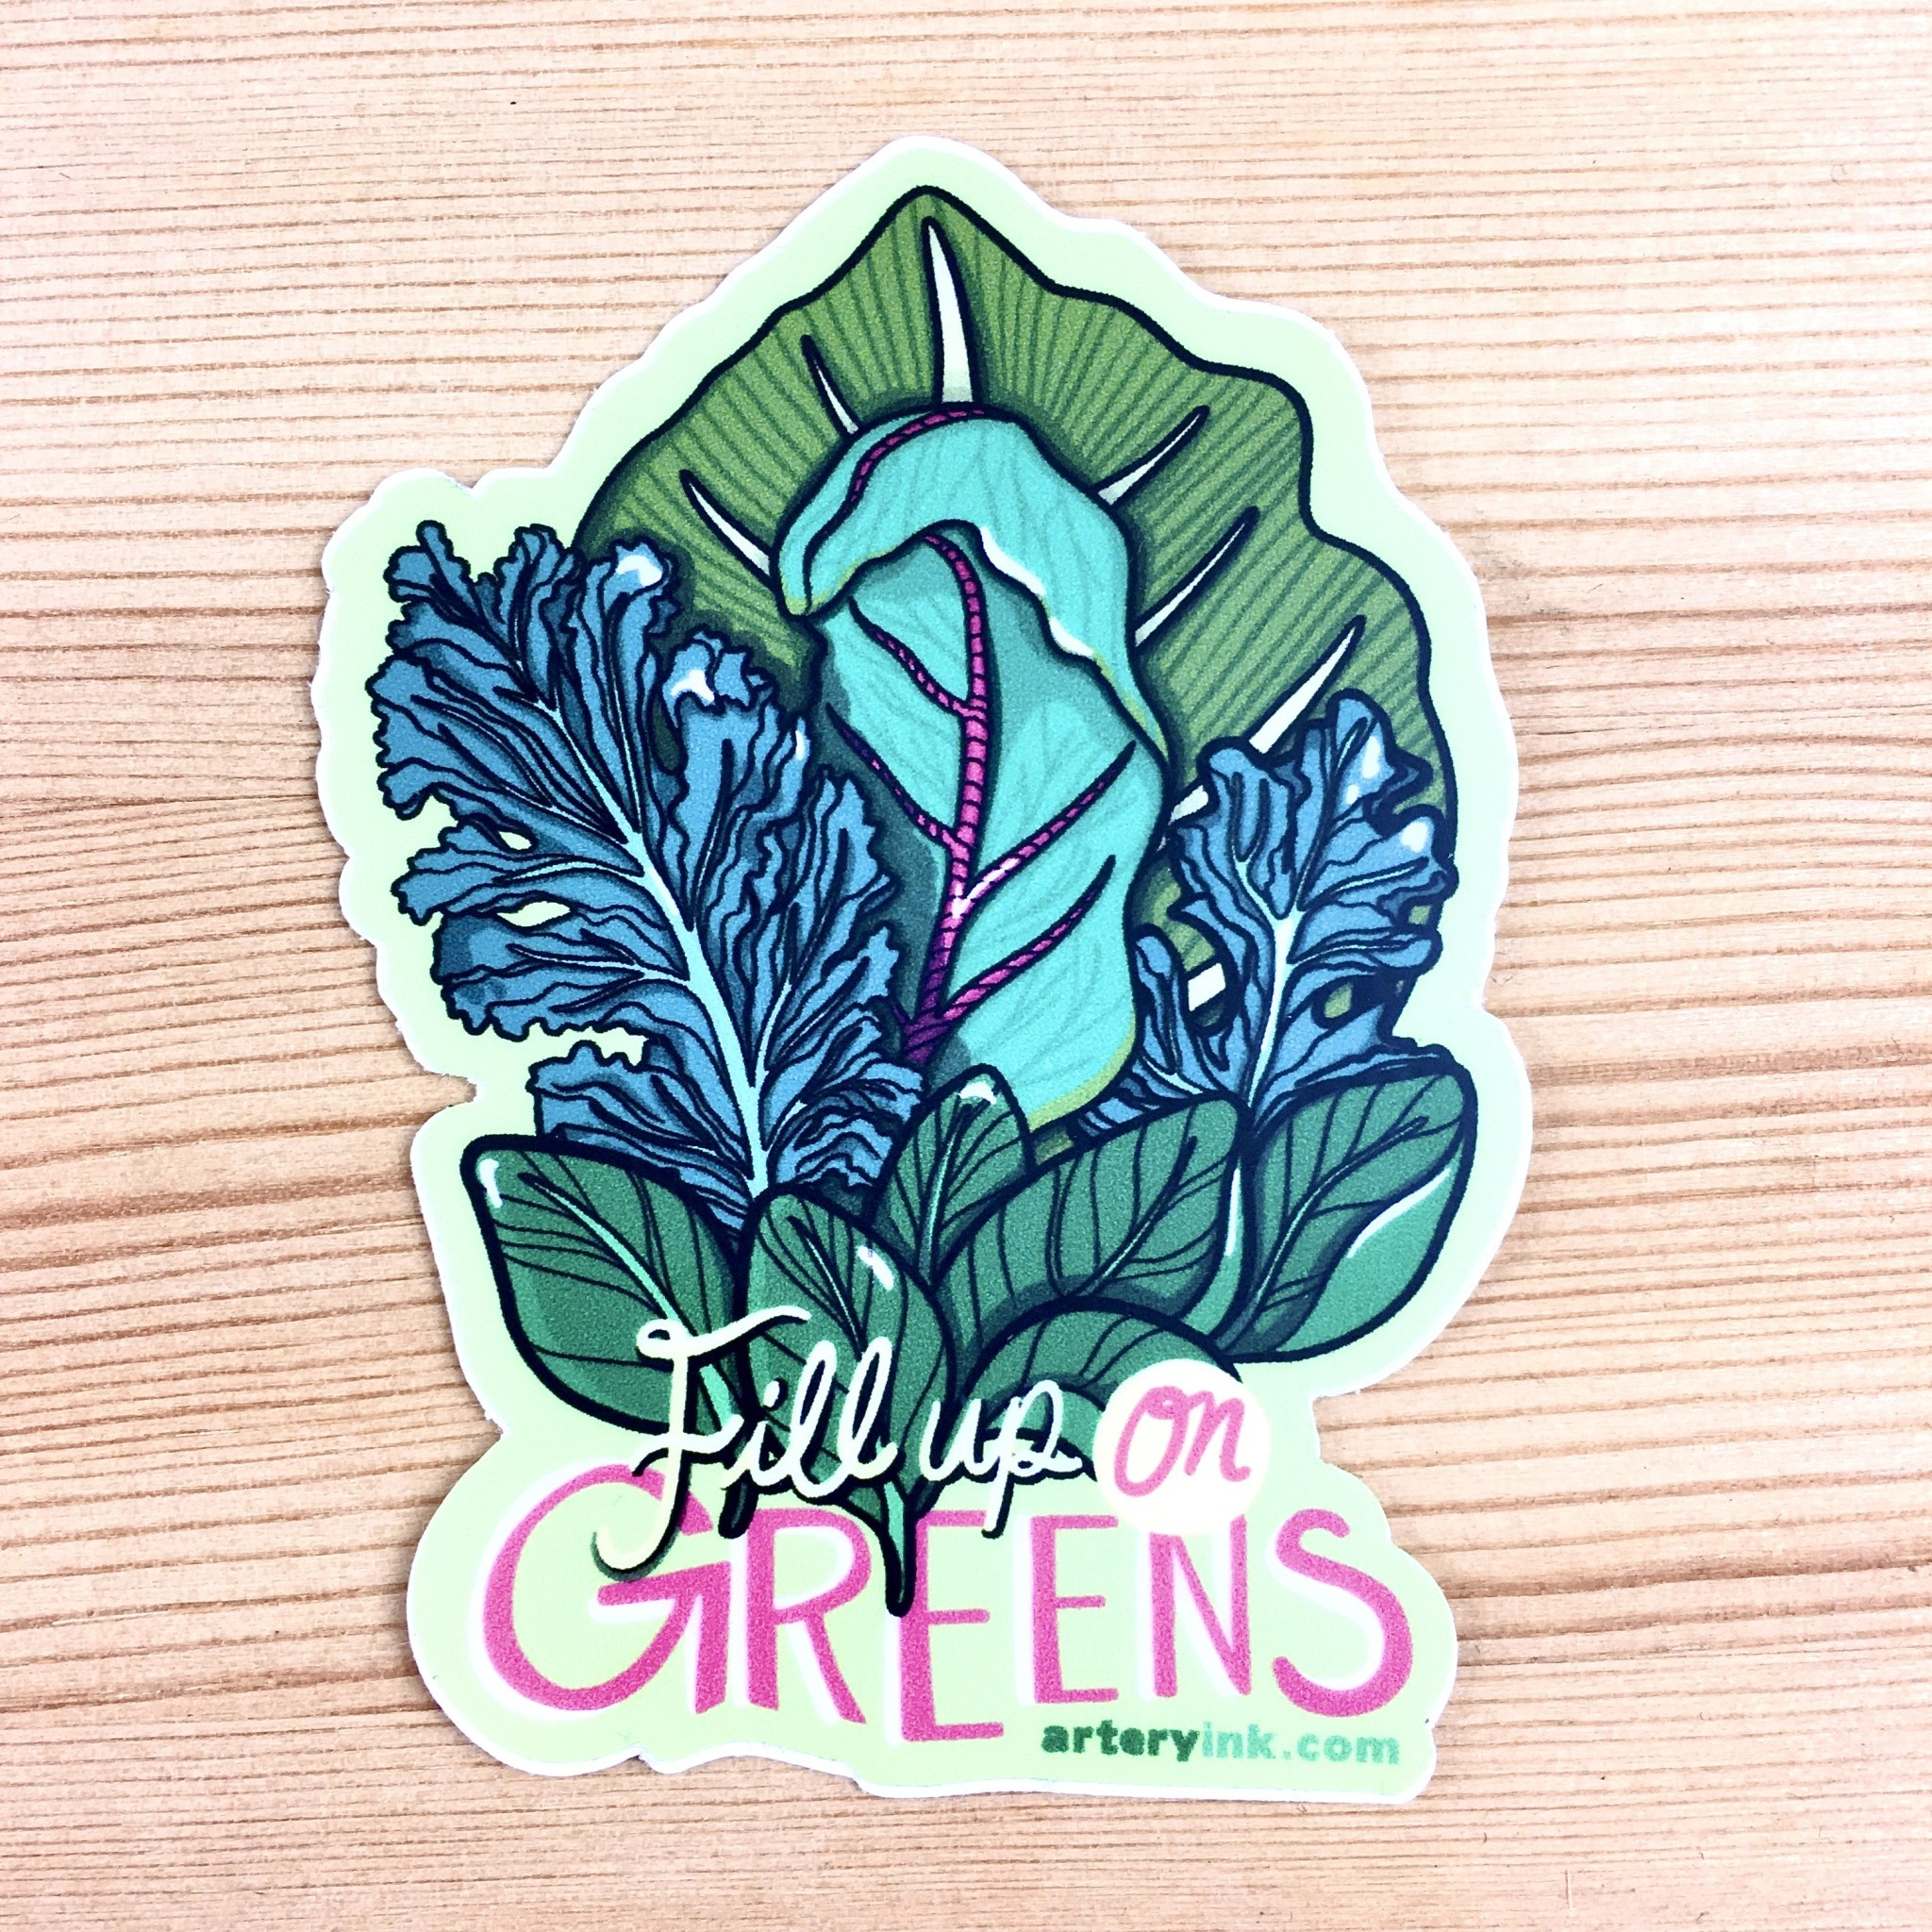 Artery Ink Fill Up On Greens Reminder Sticker